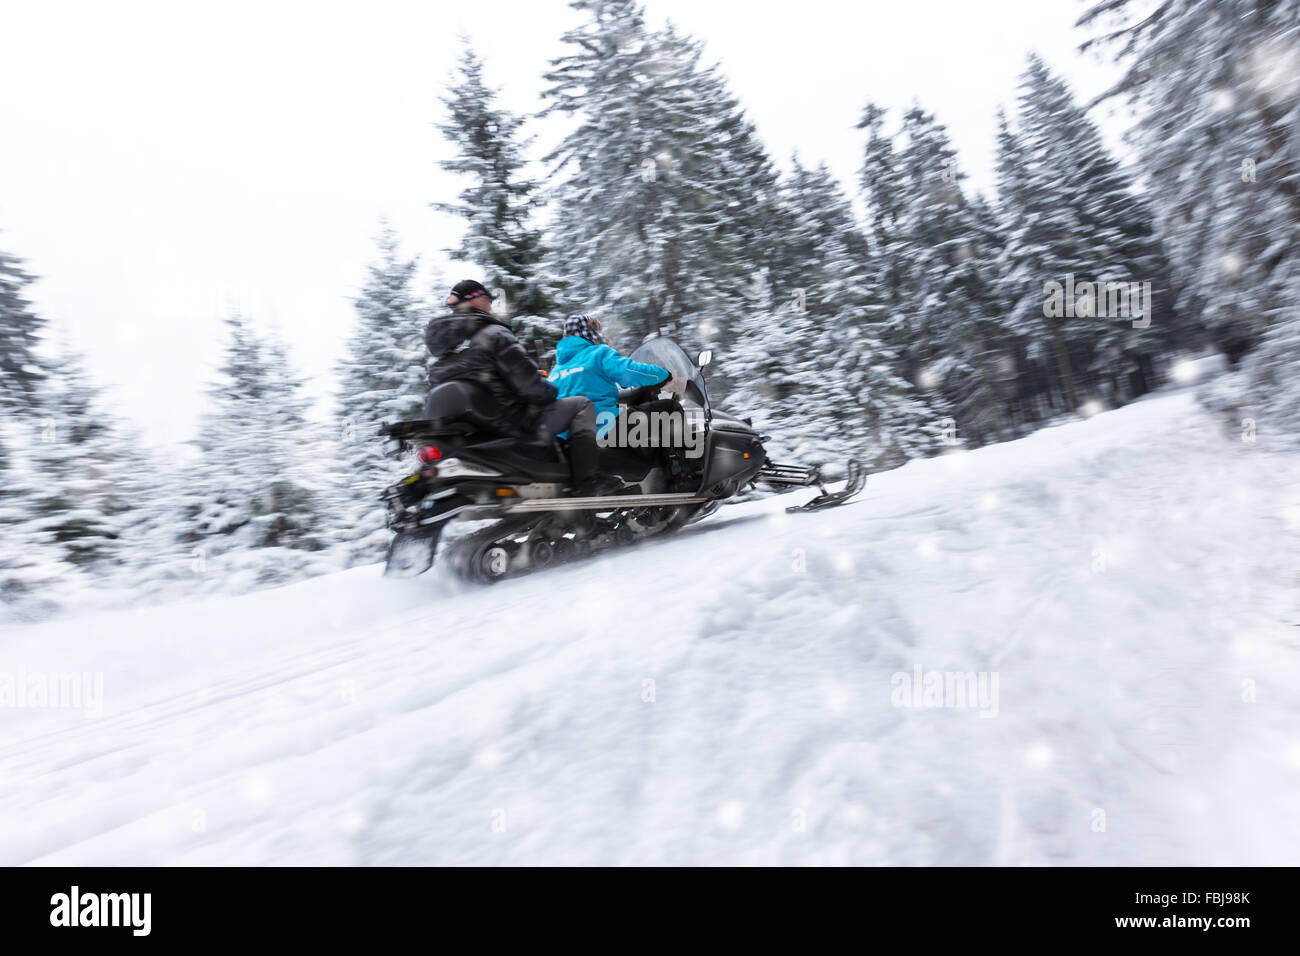 Snowmobile on winter forest road - Stock Image